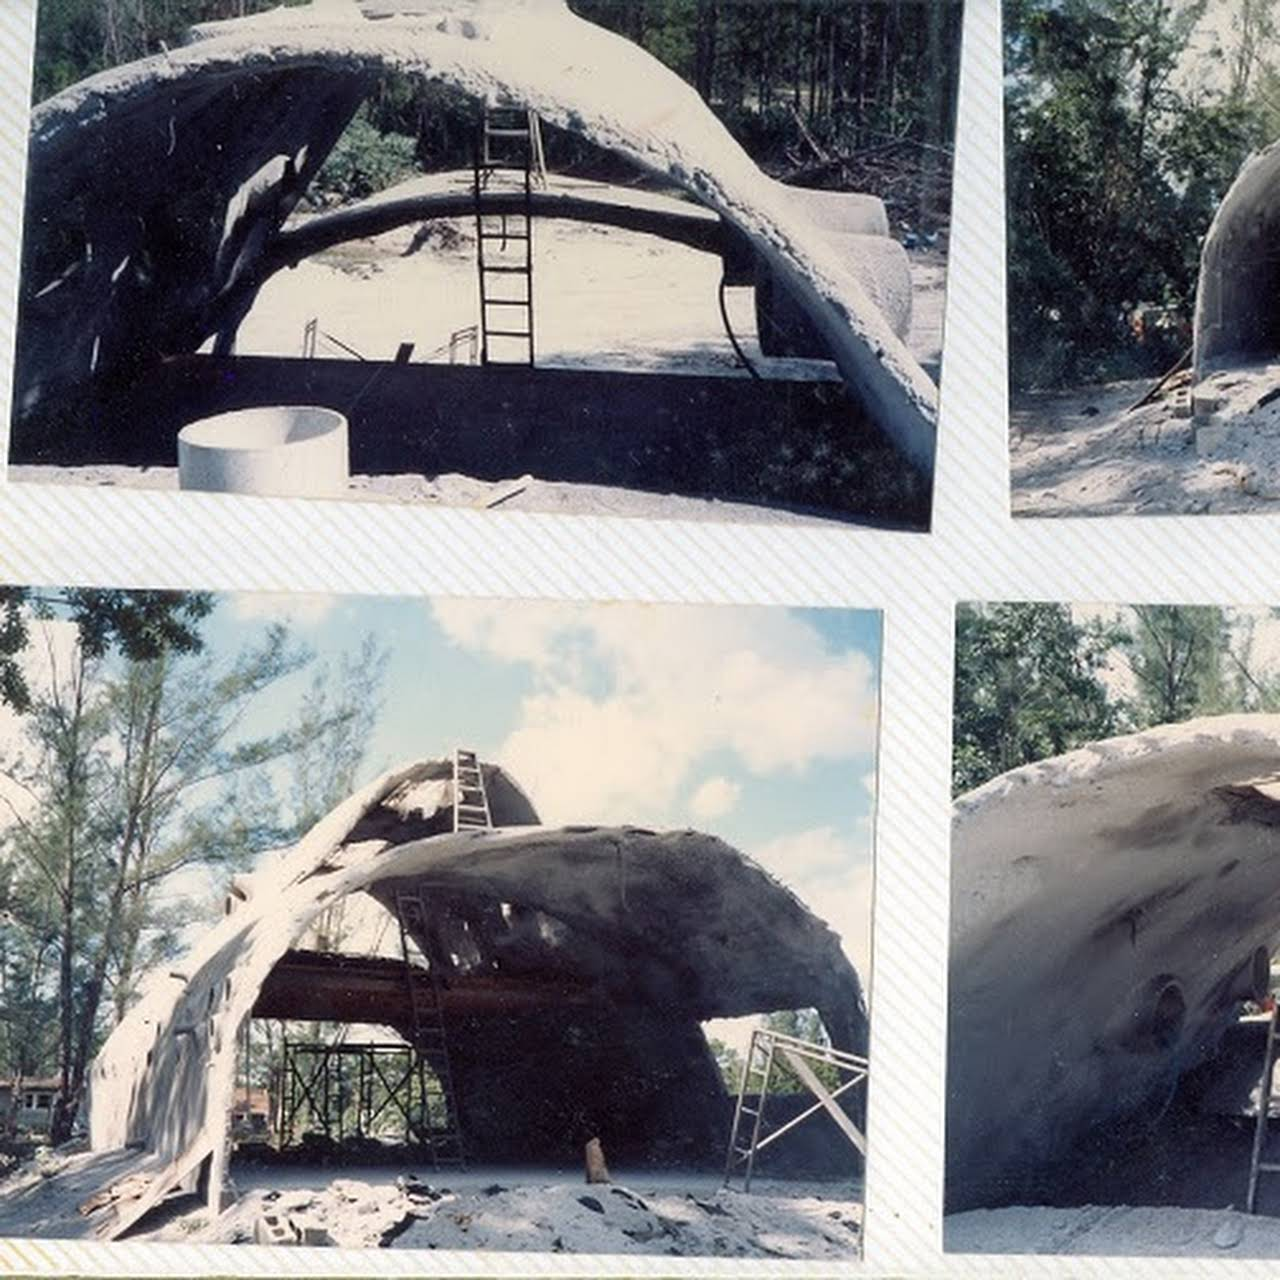 Category 5 hurricane proof indestructible bunker homes